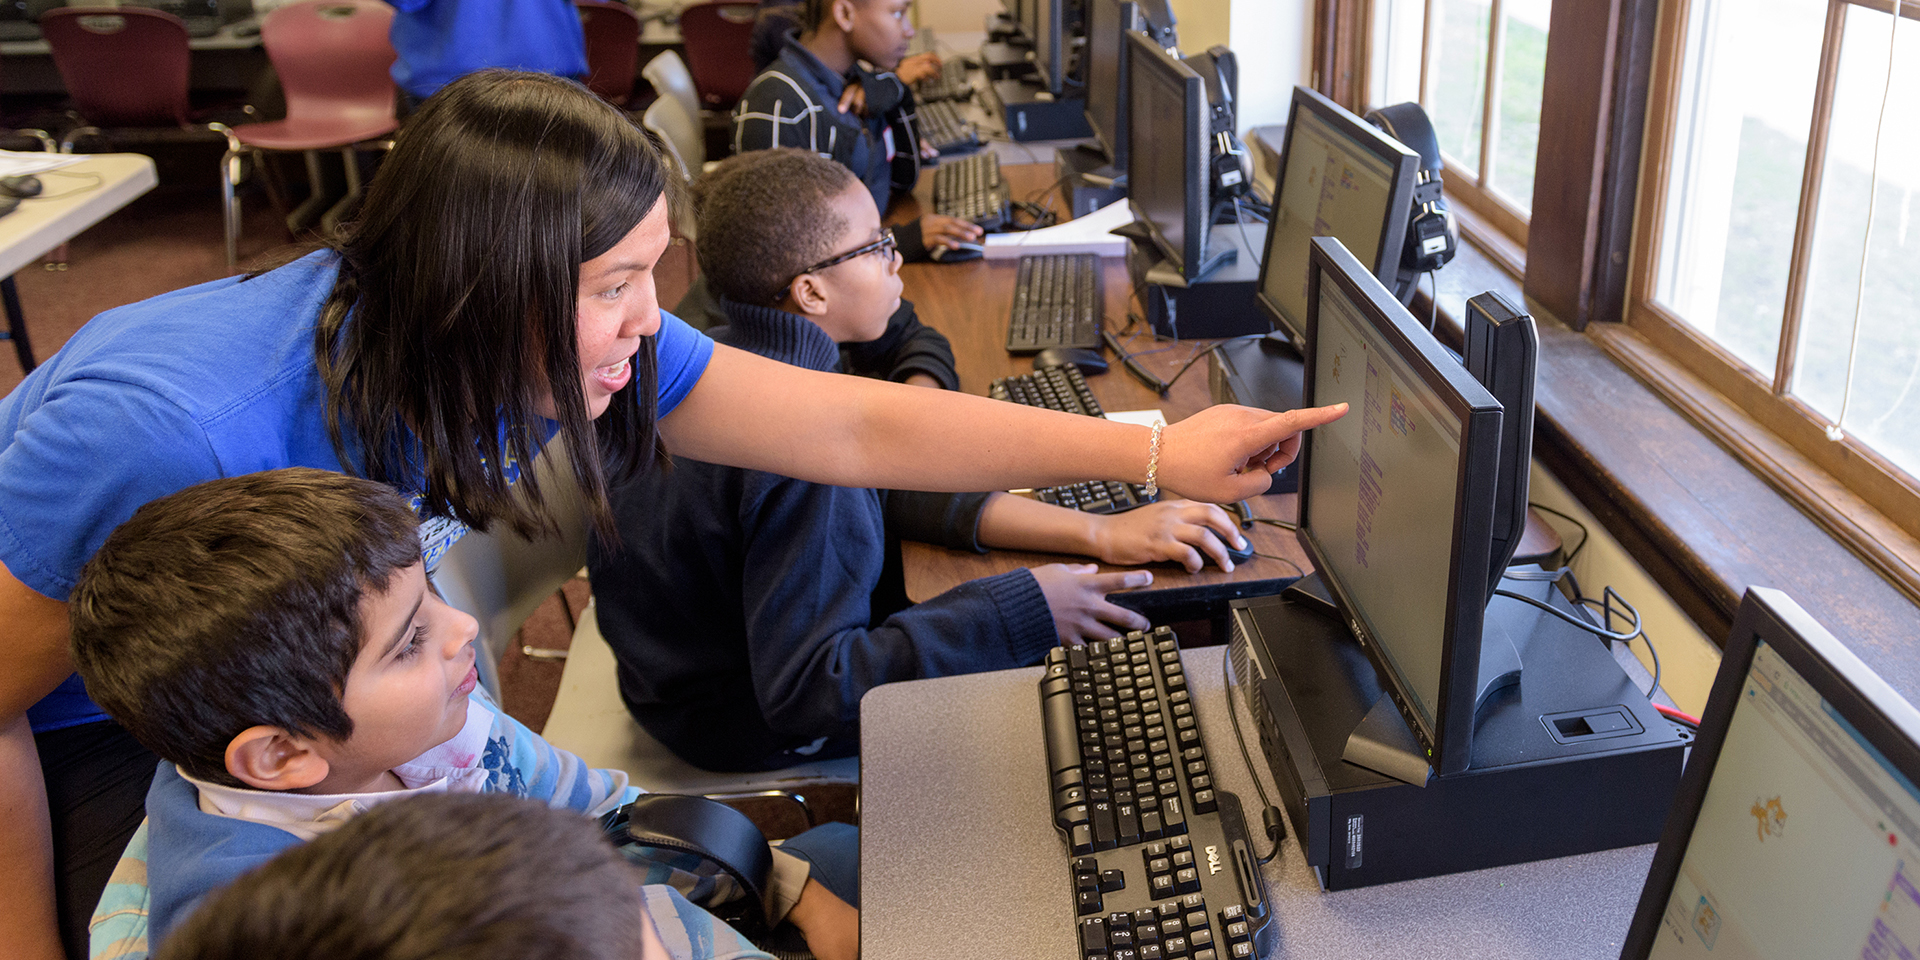 Student teacher works with students in computer lab